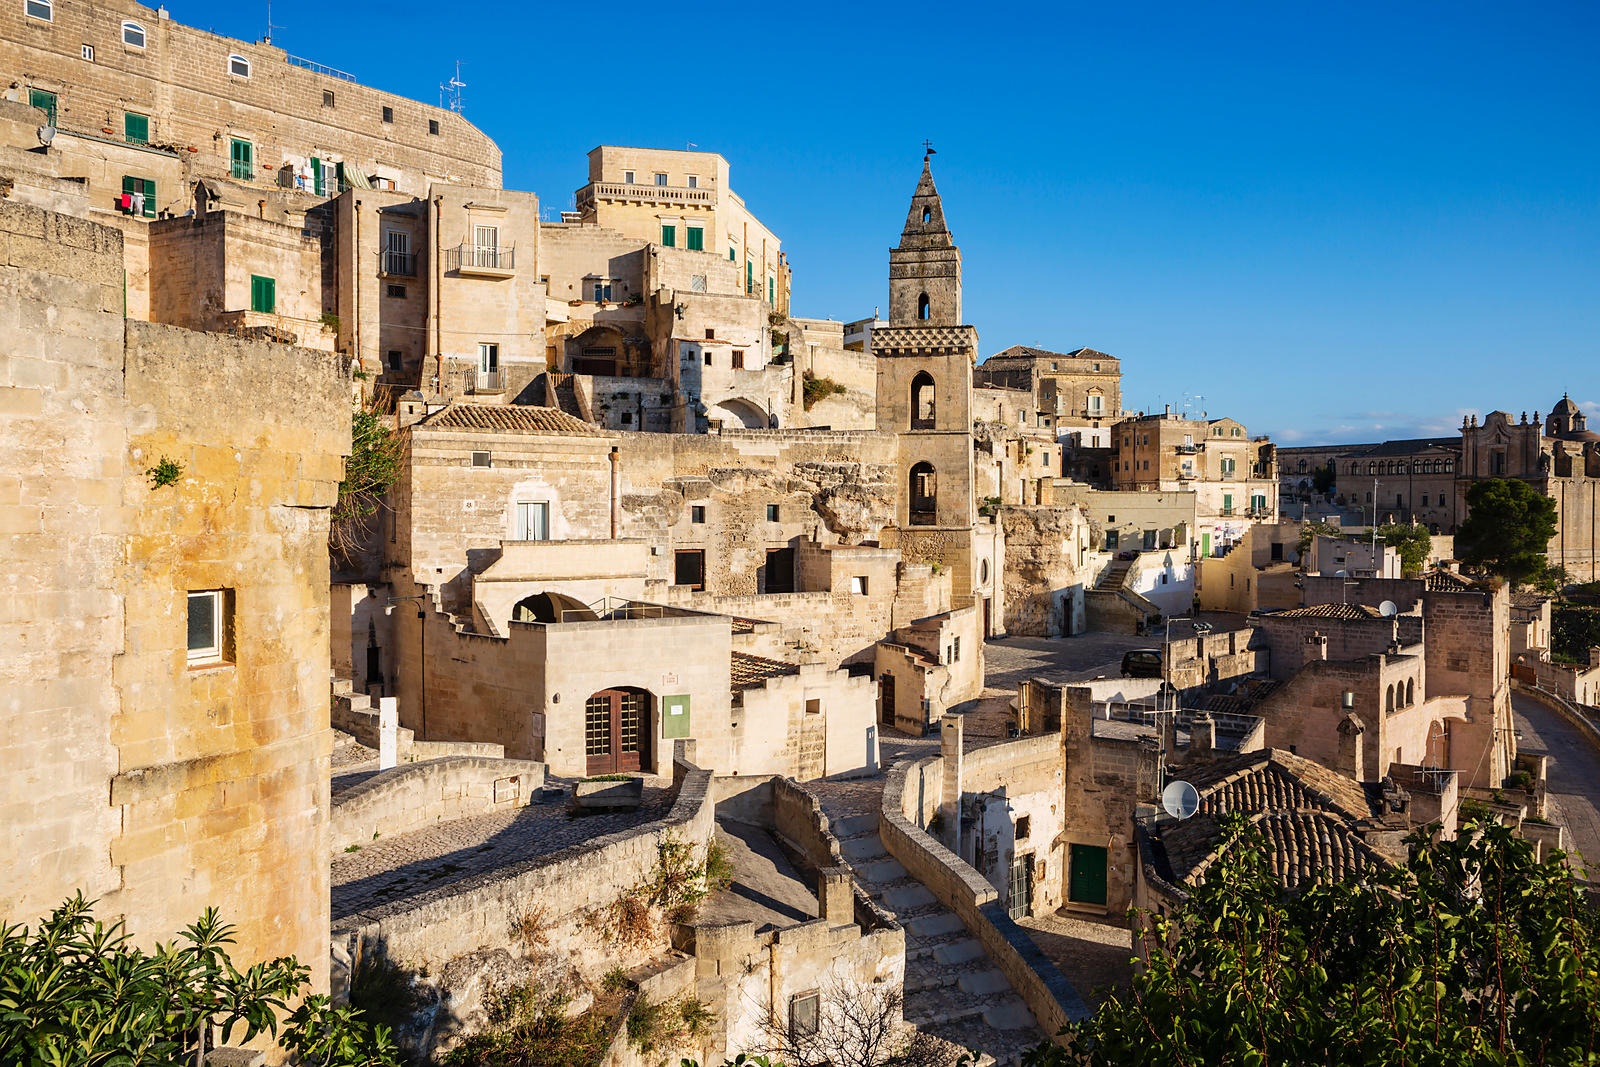 Elevated View of the Streets of Matera